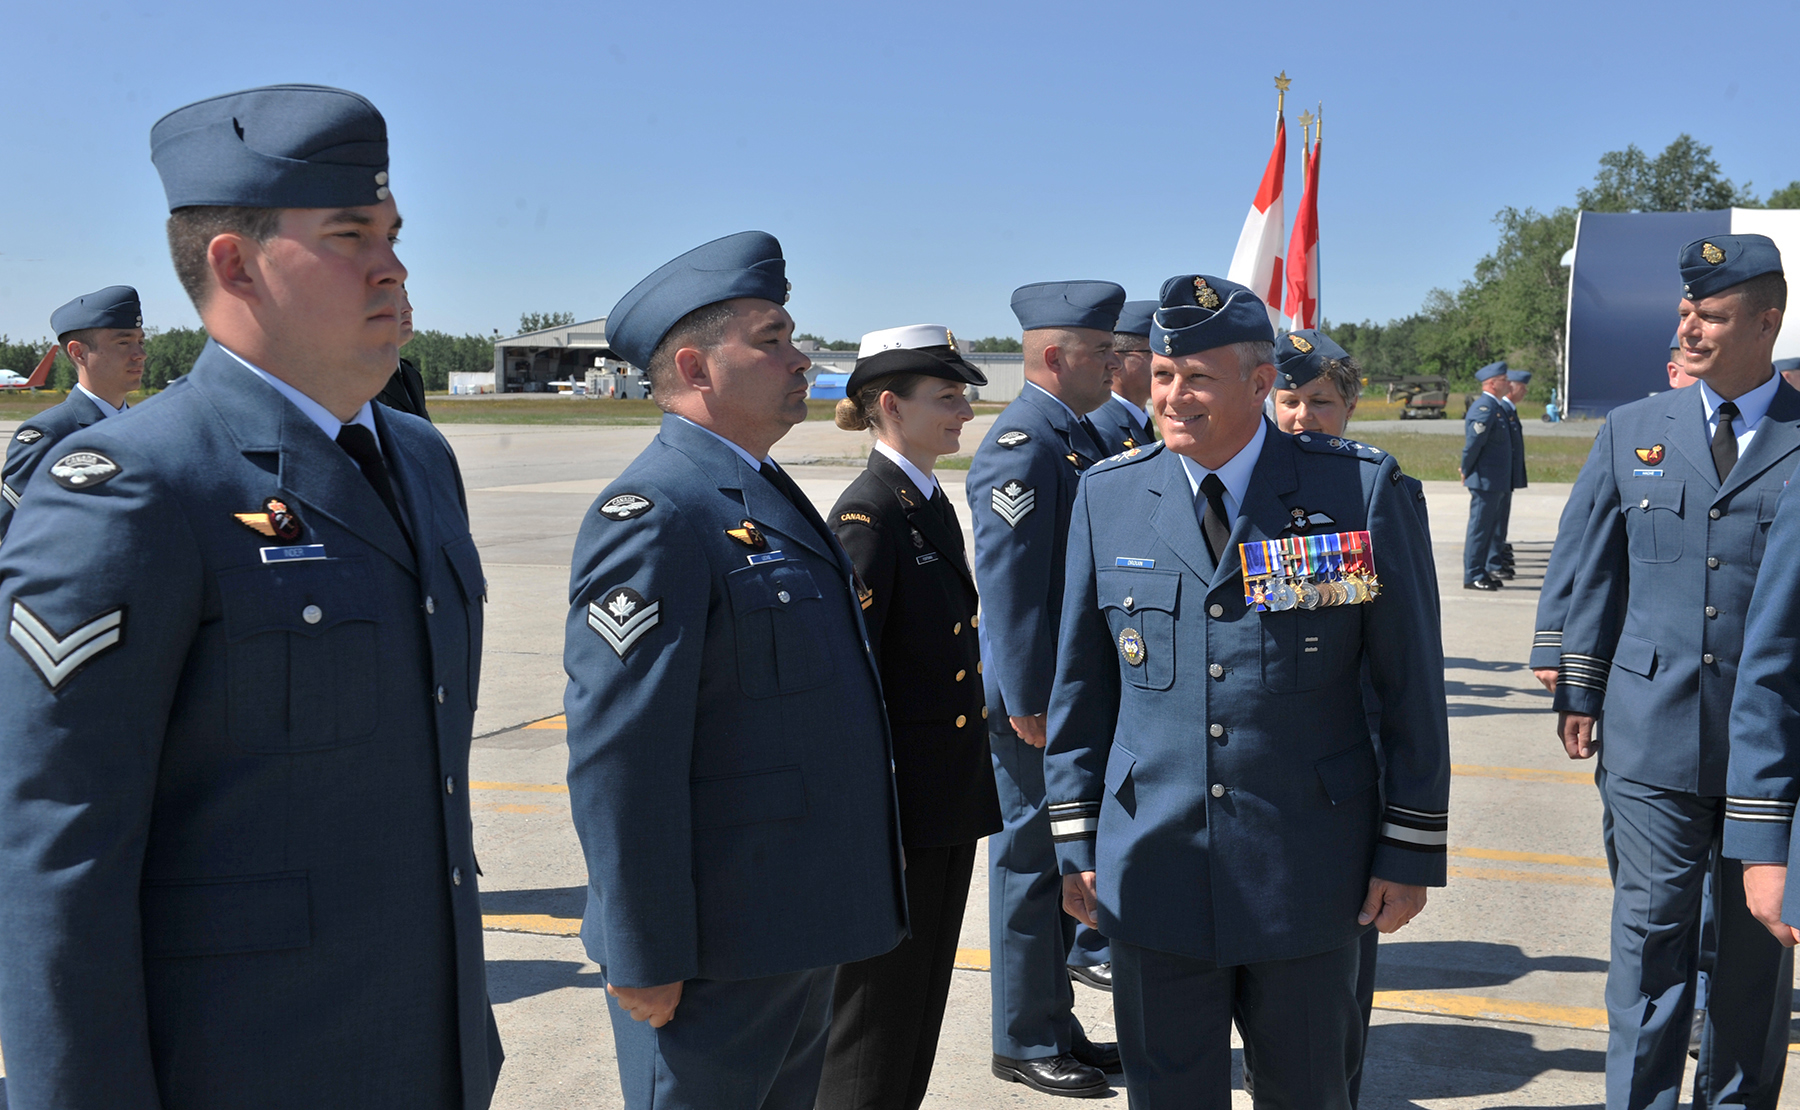 During the July 18, 2017, Change of Command ceremony held at 9 Wing Gander, Newfoundland and Labrador, Major General Christian Drouin (centre), accompanied by LS Ewa Portman and MCpl Scott Leckie, inspects the troops, including Cpl Paul Inder. PHOTO: Second Lieutenant Todd Silk